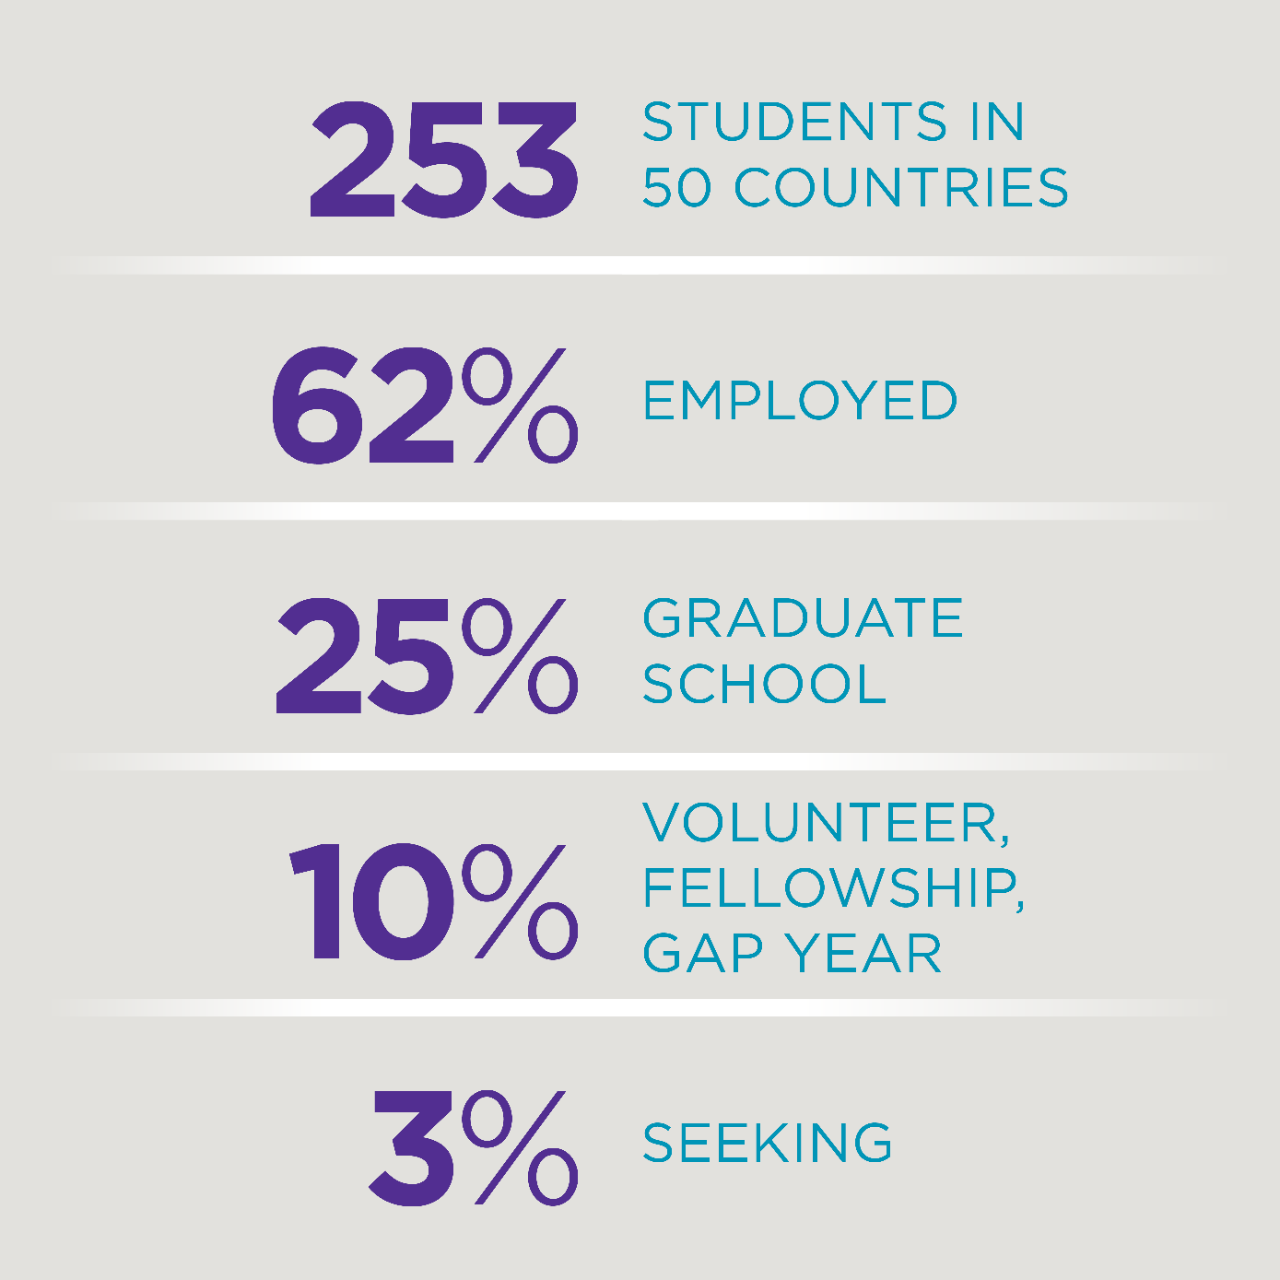 253 - students in 50 countries; 62% employed; 25% graduate school; 10% volunteer, fellowship, gap year; 3% seeking.